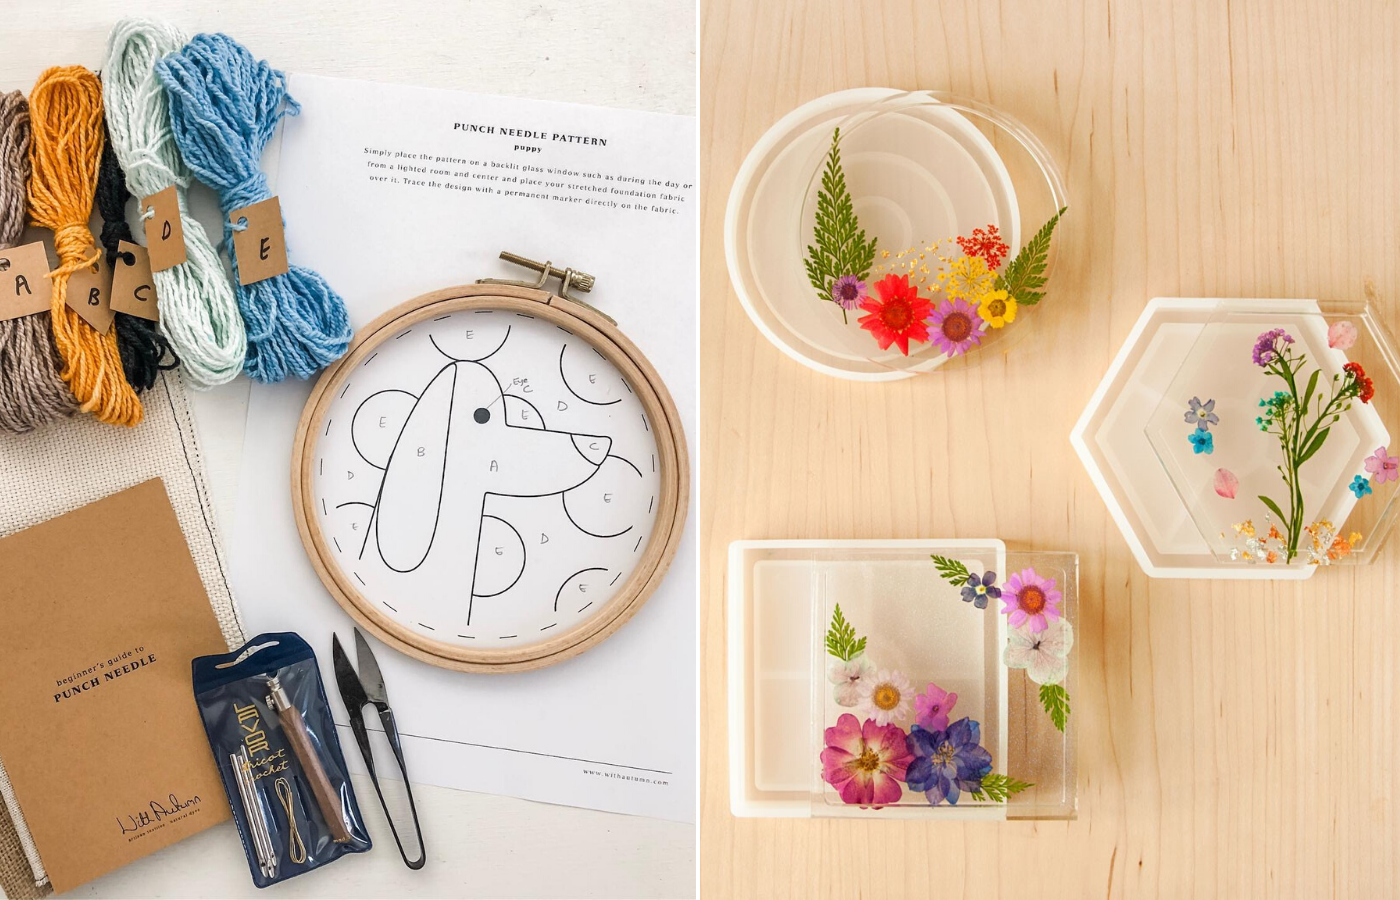 Get creative with DIY craft kits for fun times at home